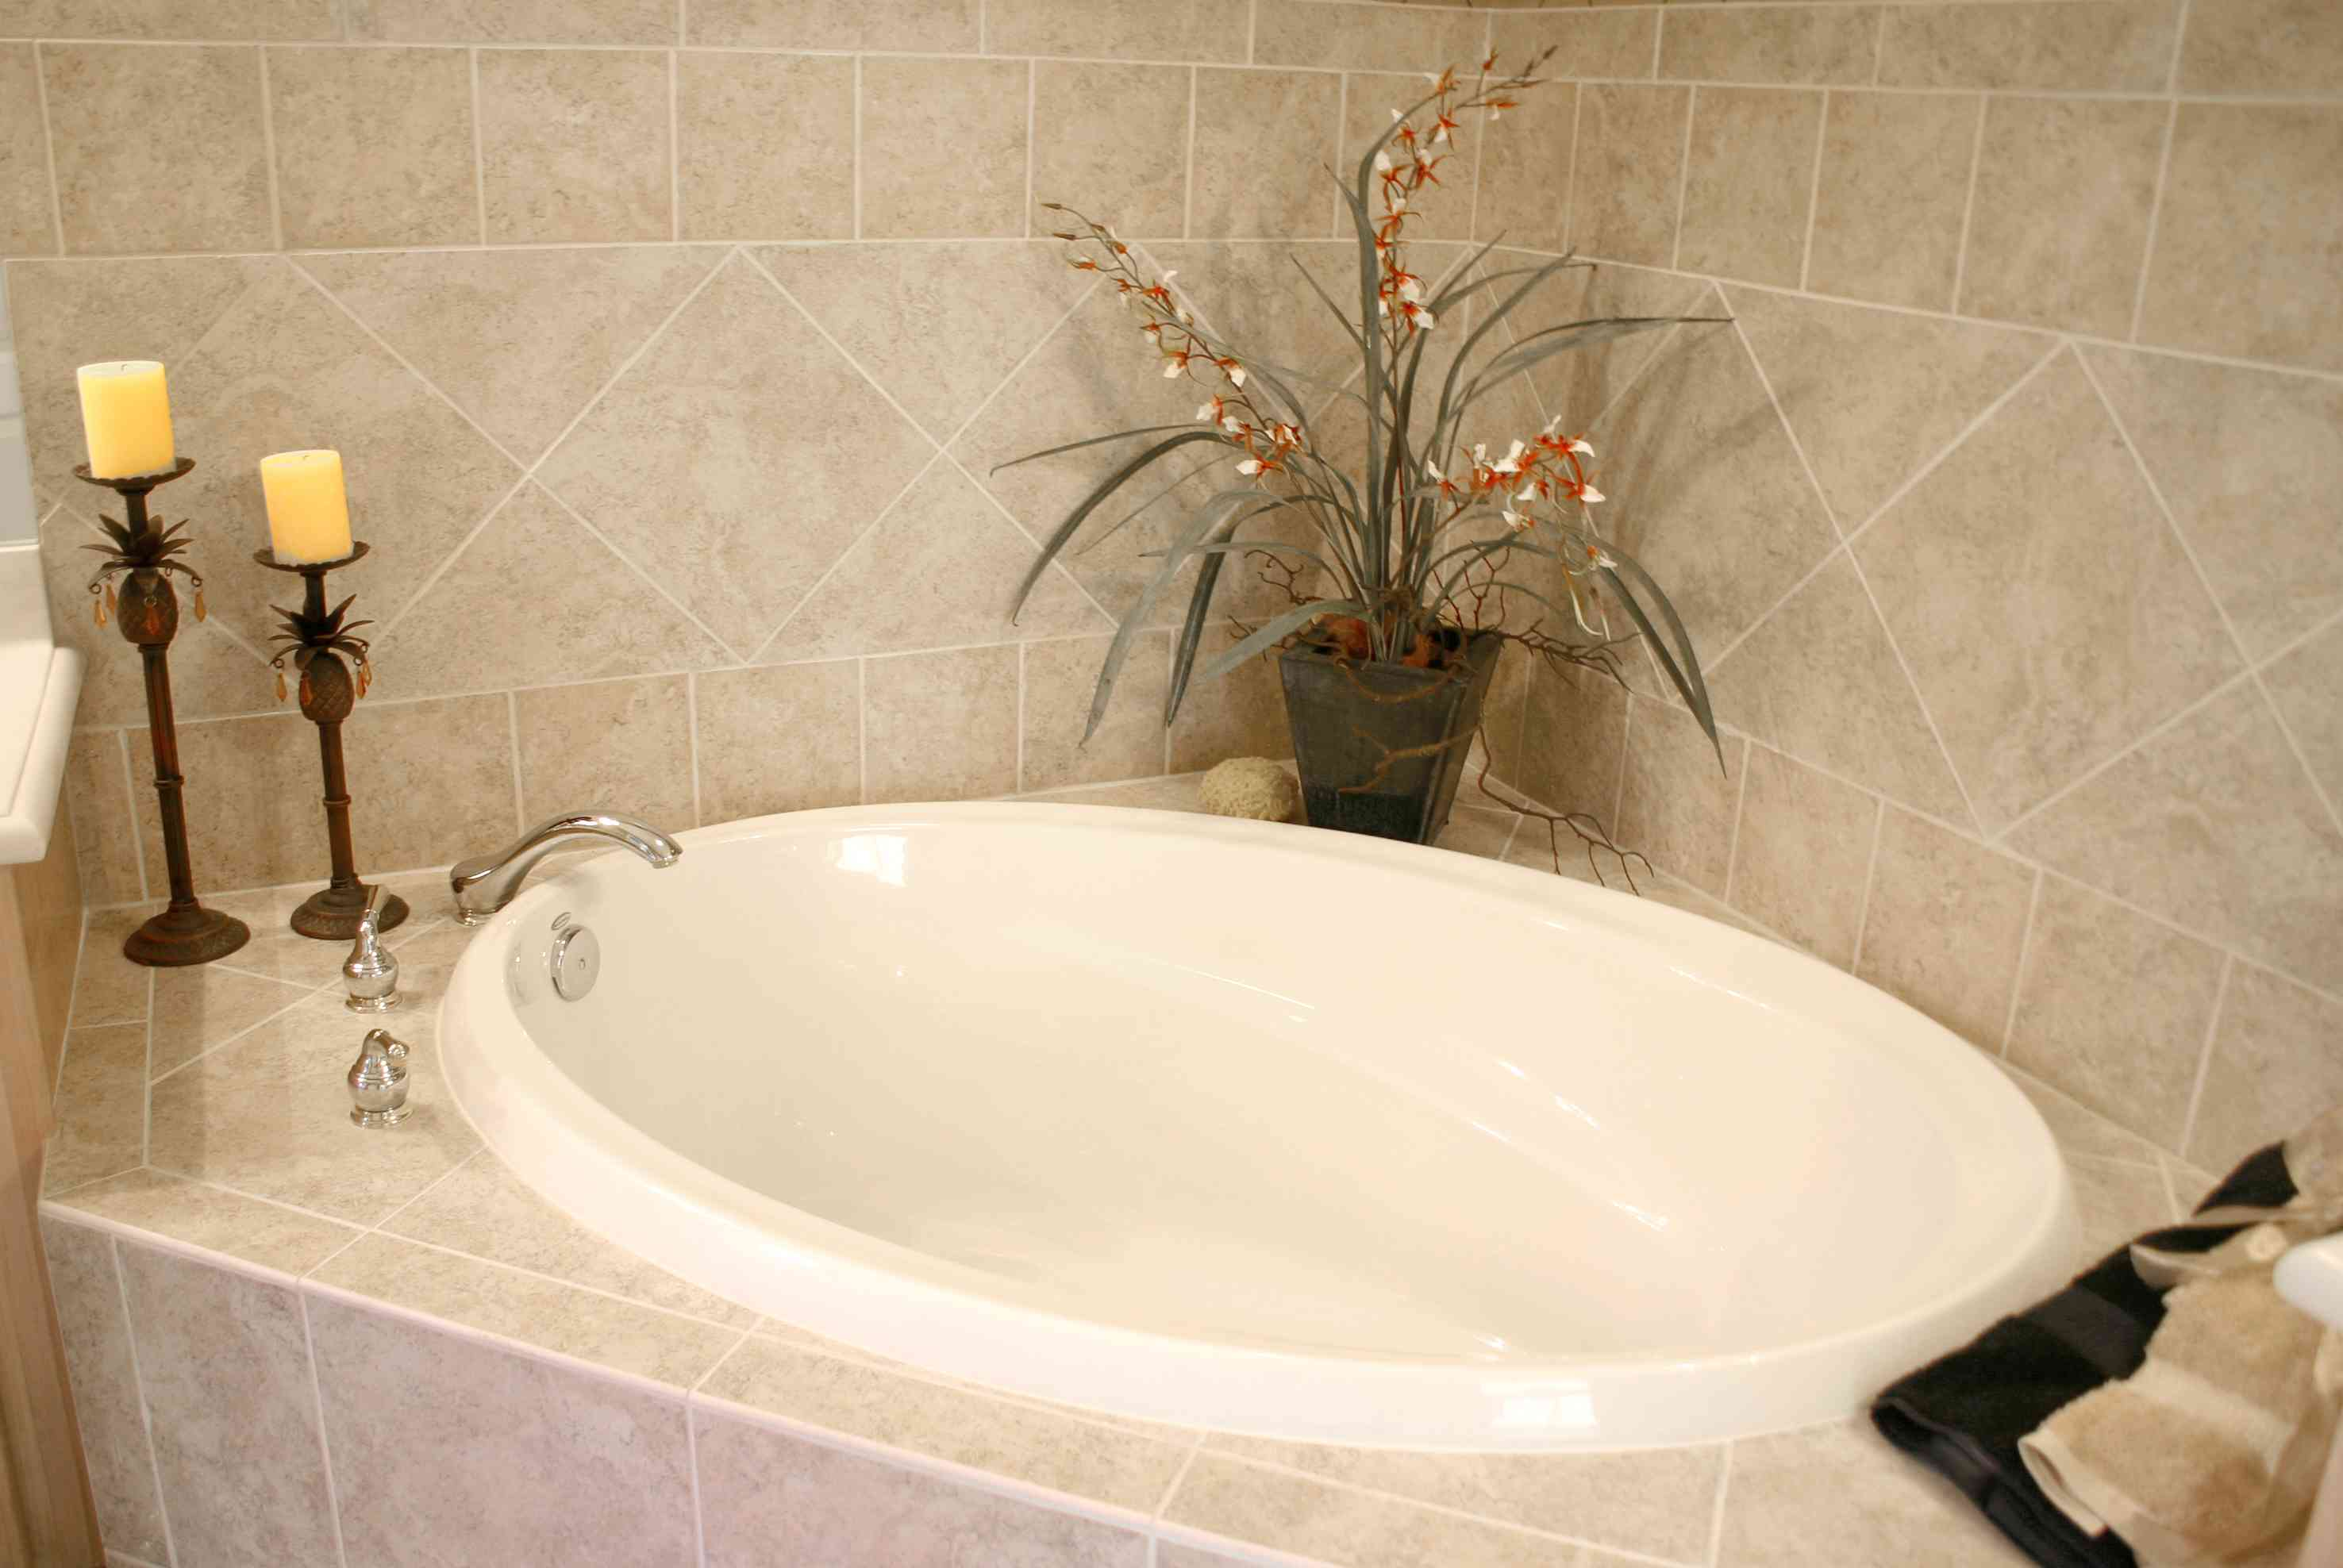 Standard Bathtub Sizes Reference Guide To Common Tubs